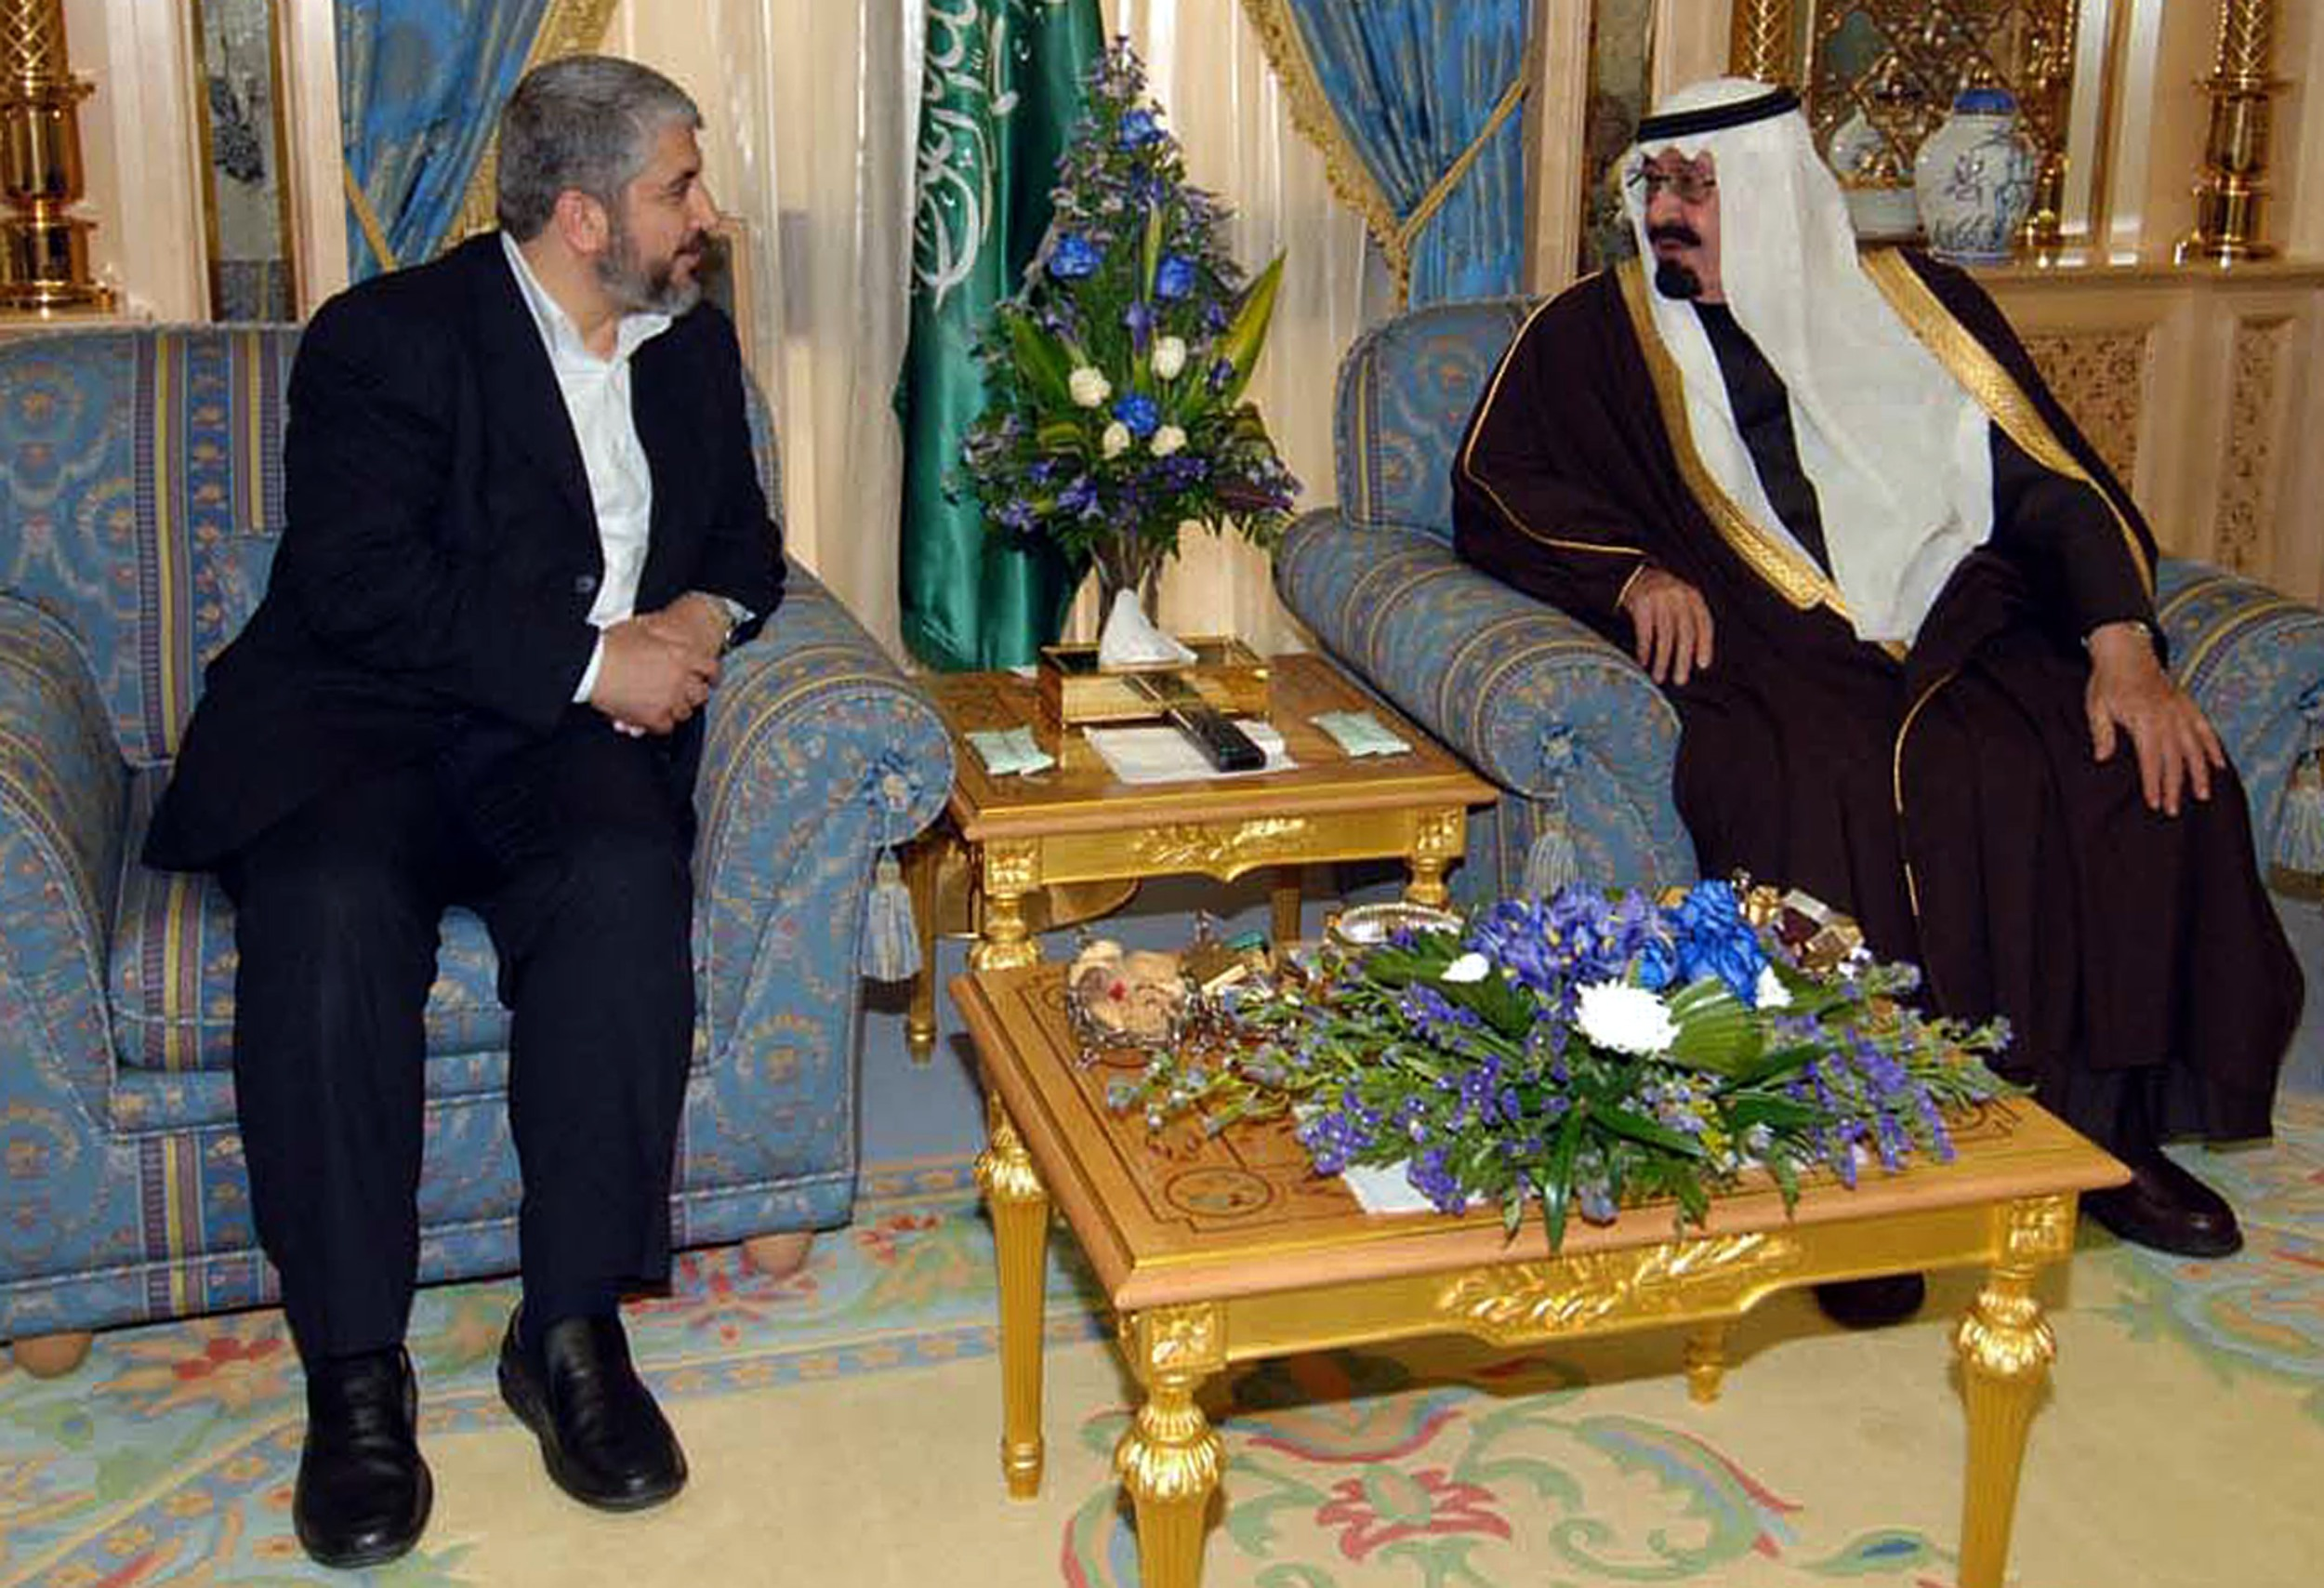 Hamas politiburo chief Khaled Meshaal, left, with Saudi King Abdullah in Riyadh on 20 March 2007 (AFP)